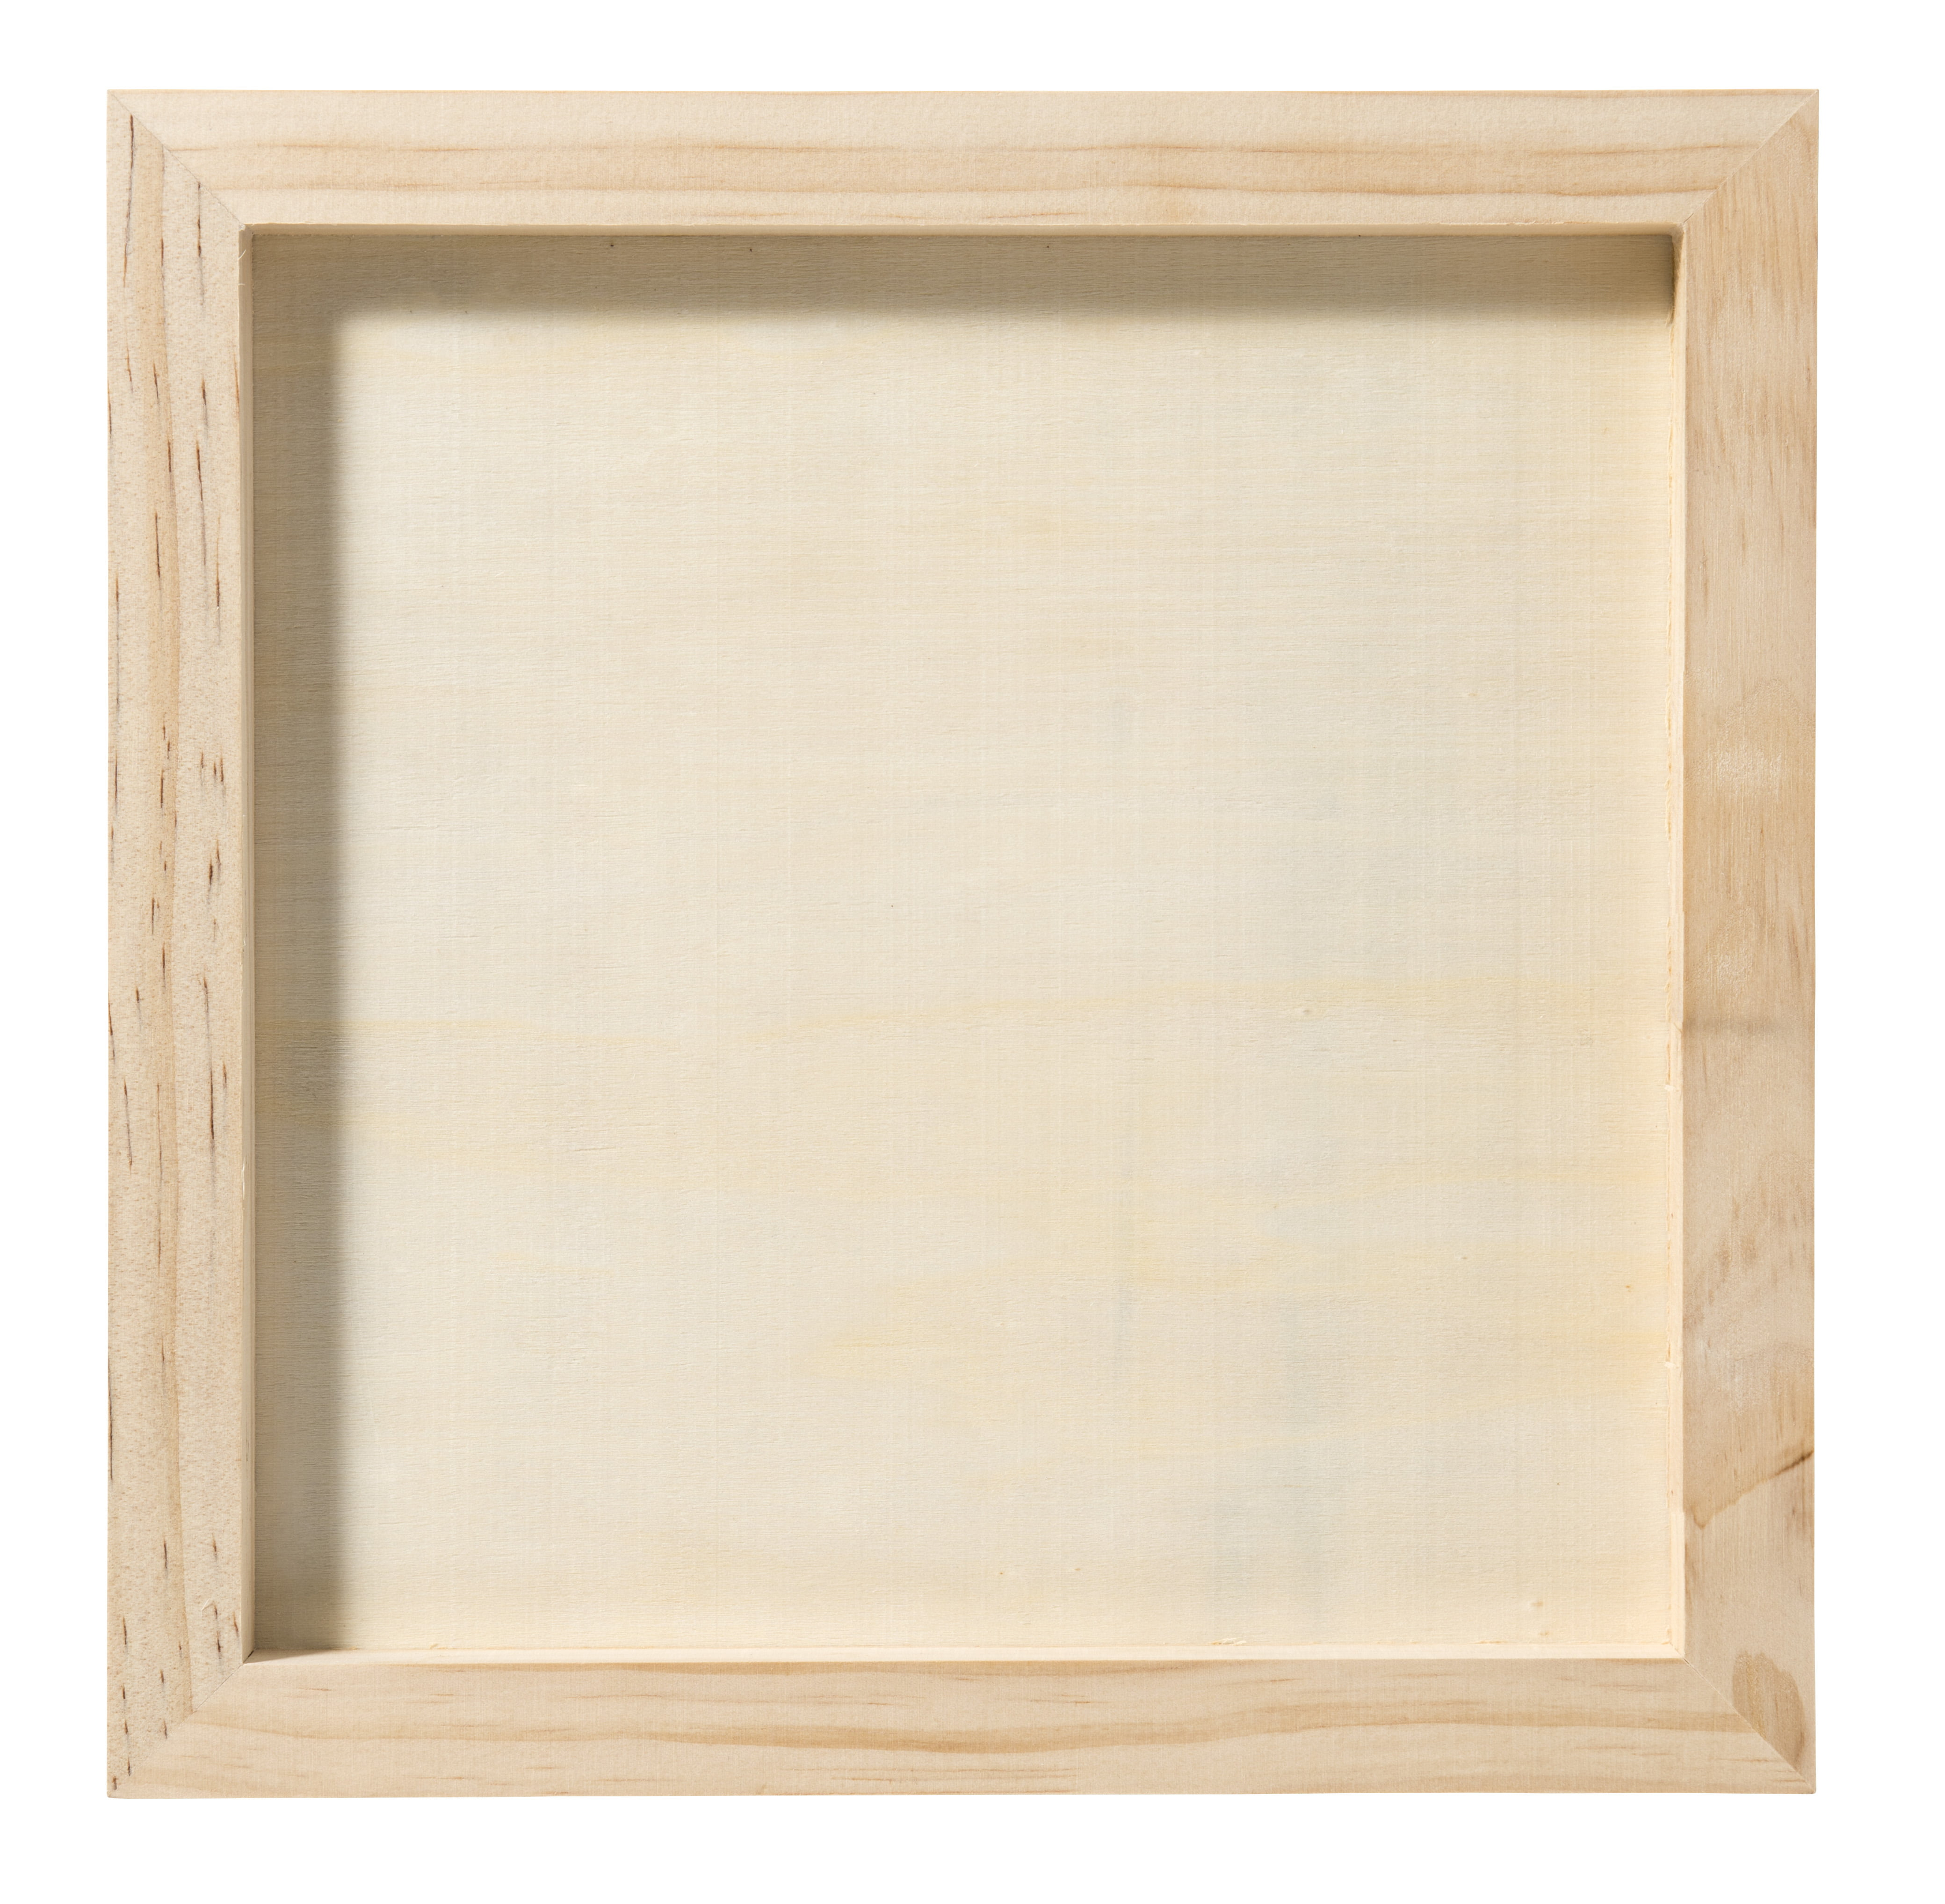 5 Pcs Wood Canvas Boards,5 x 5 Unfinished Wood Painting Board 0.4 Deep Wooden Cradled Painting Panel for Arts /& Craft